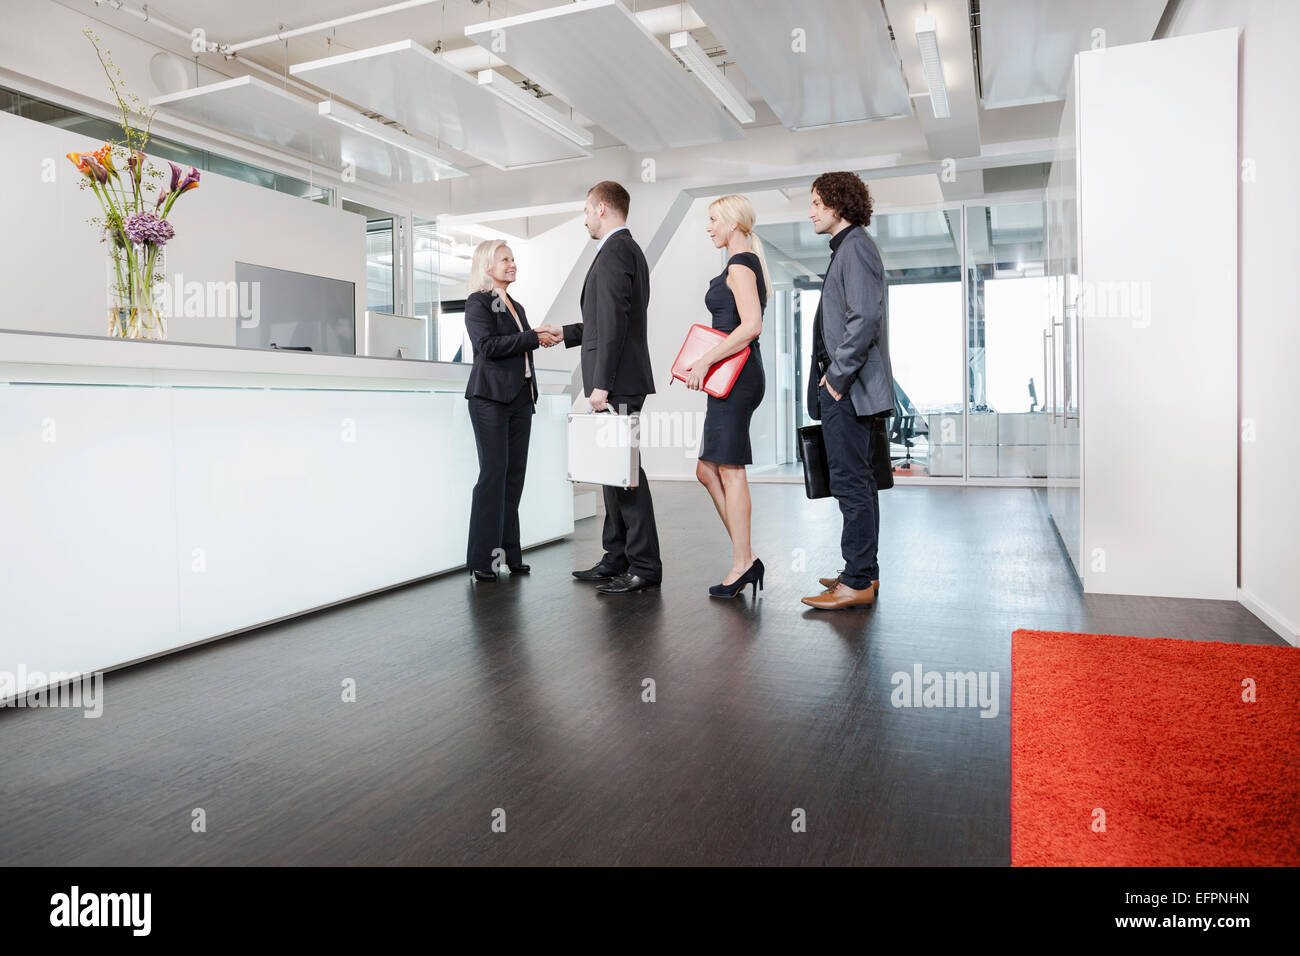 Woman shaking hands with visitors at reception - Stock Image